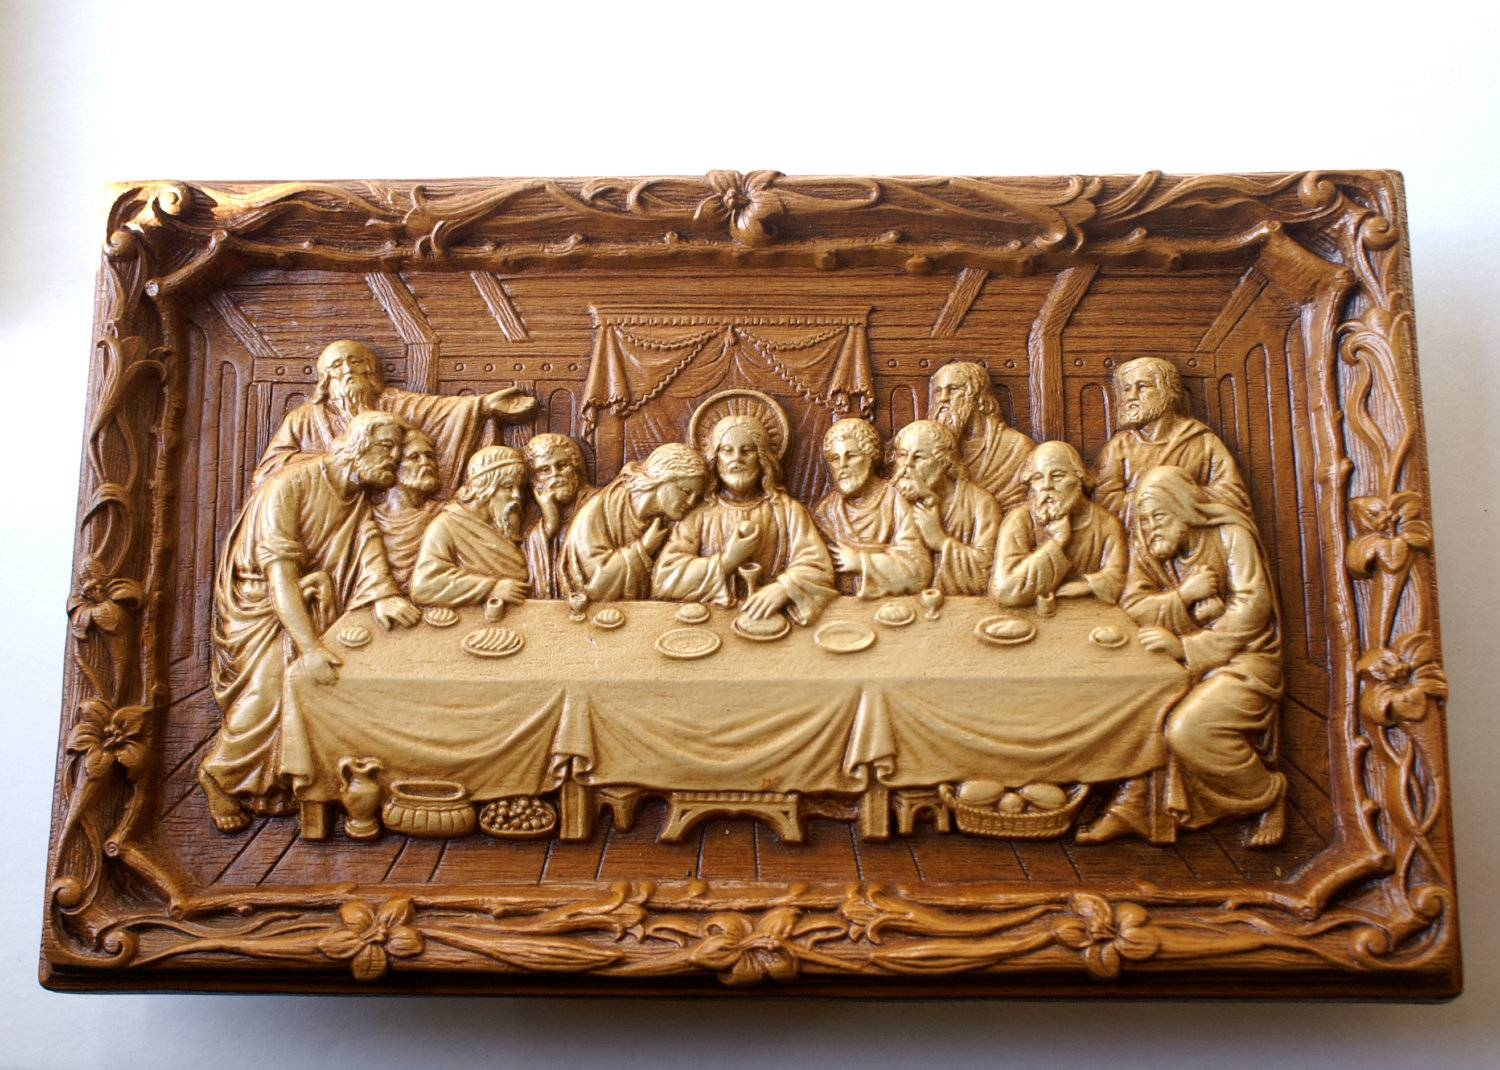 Wall Decor: Best Of Last Supper Wall Decor Last Supper 3D Wall Inside Most Current Last Supper Wall Art (View 19 of 20)